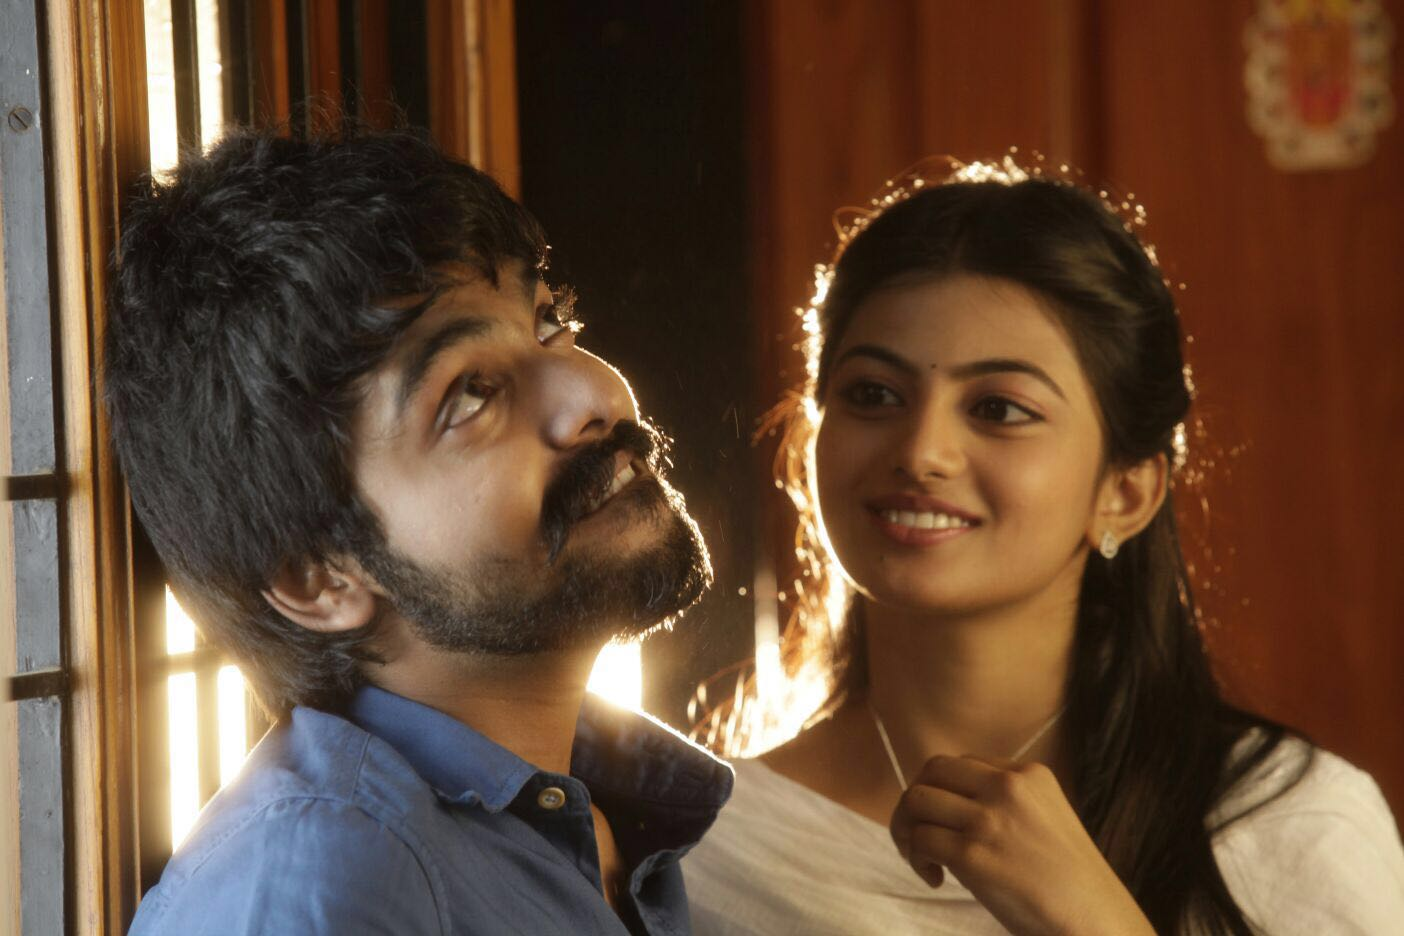 Naku inko perundi movie anandhi stills